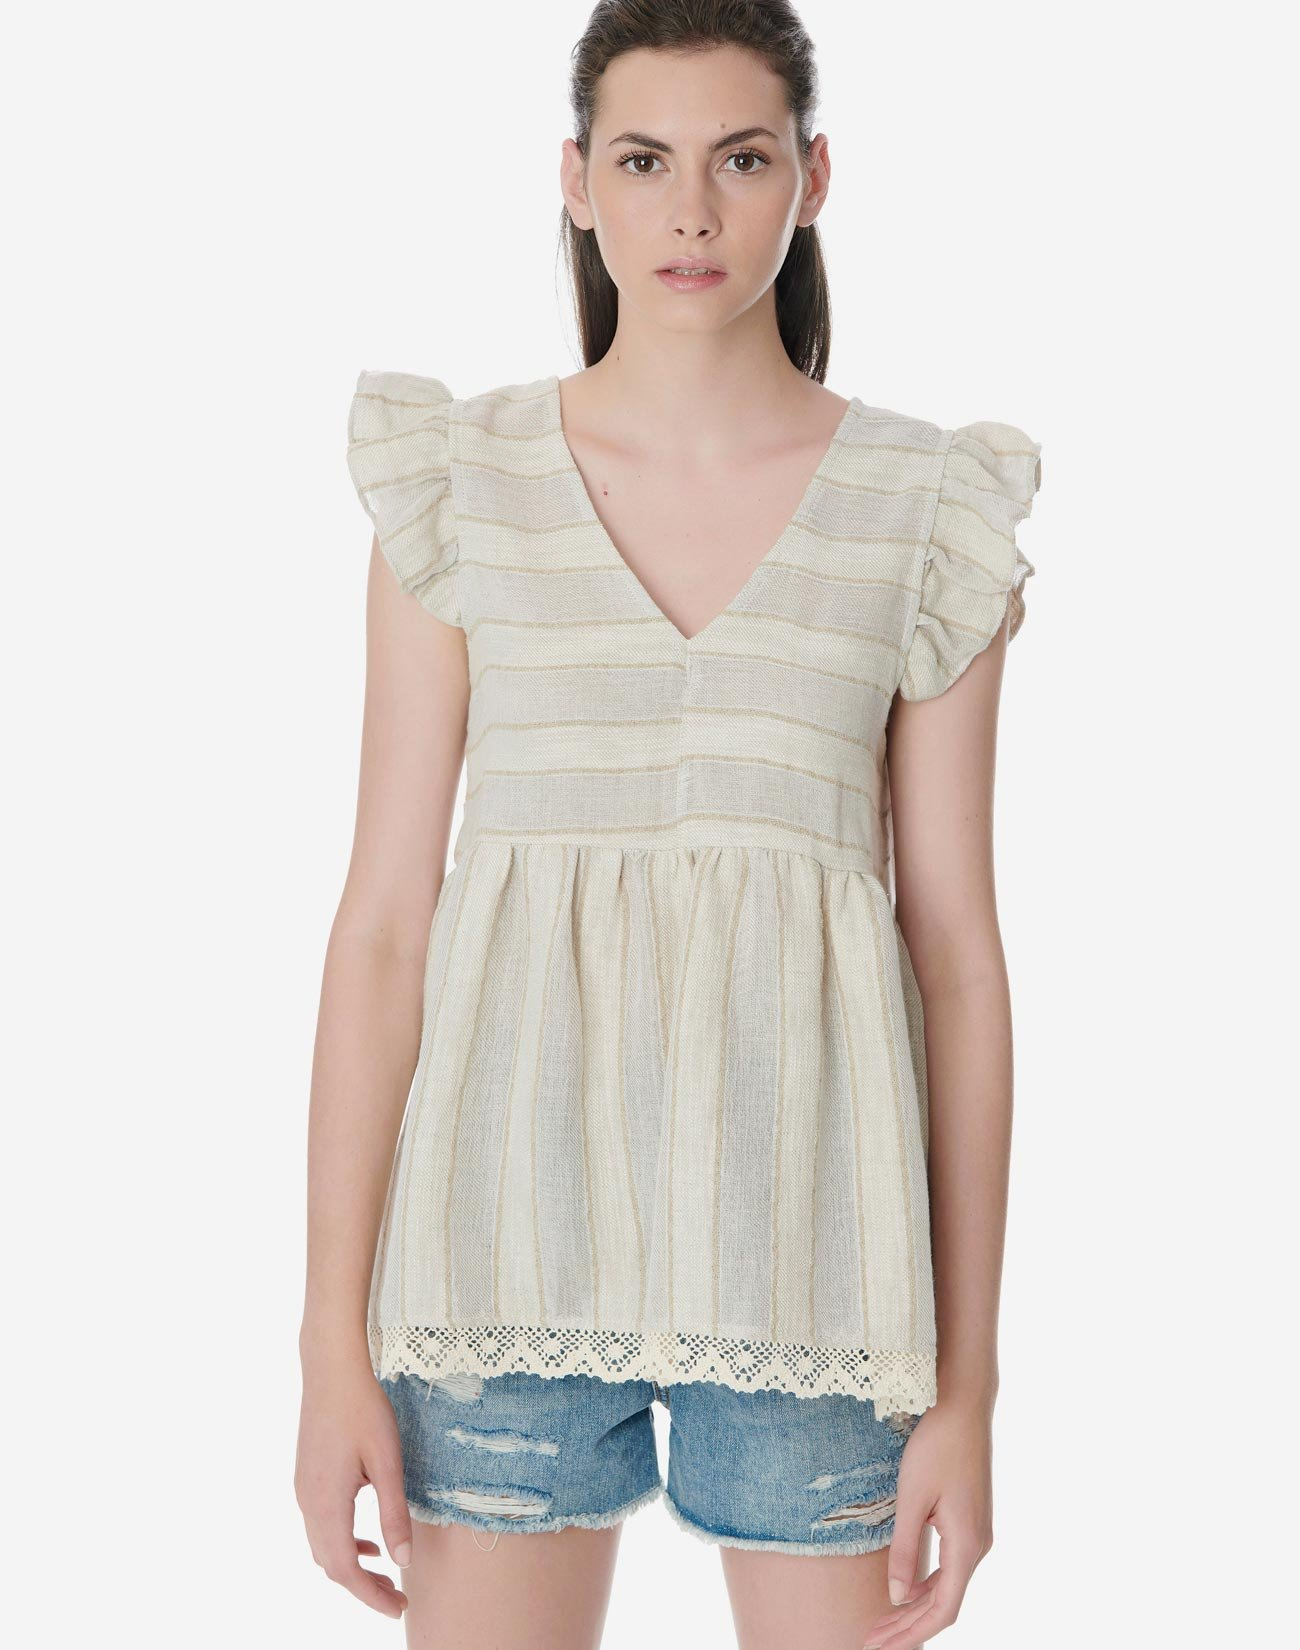 Ruffle top with lace hem